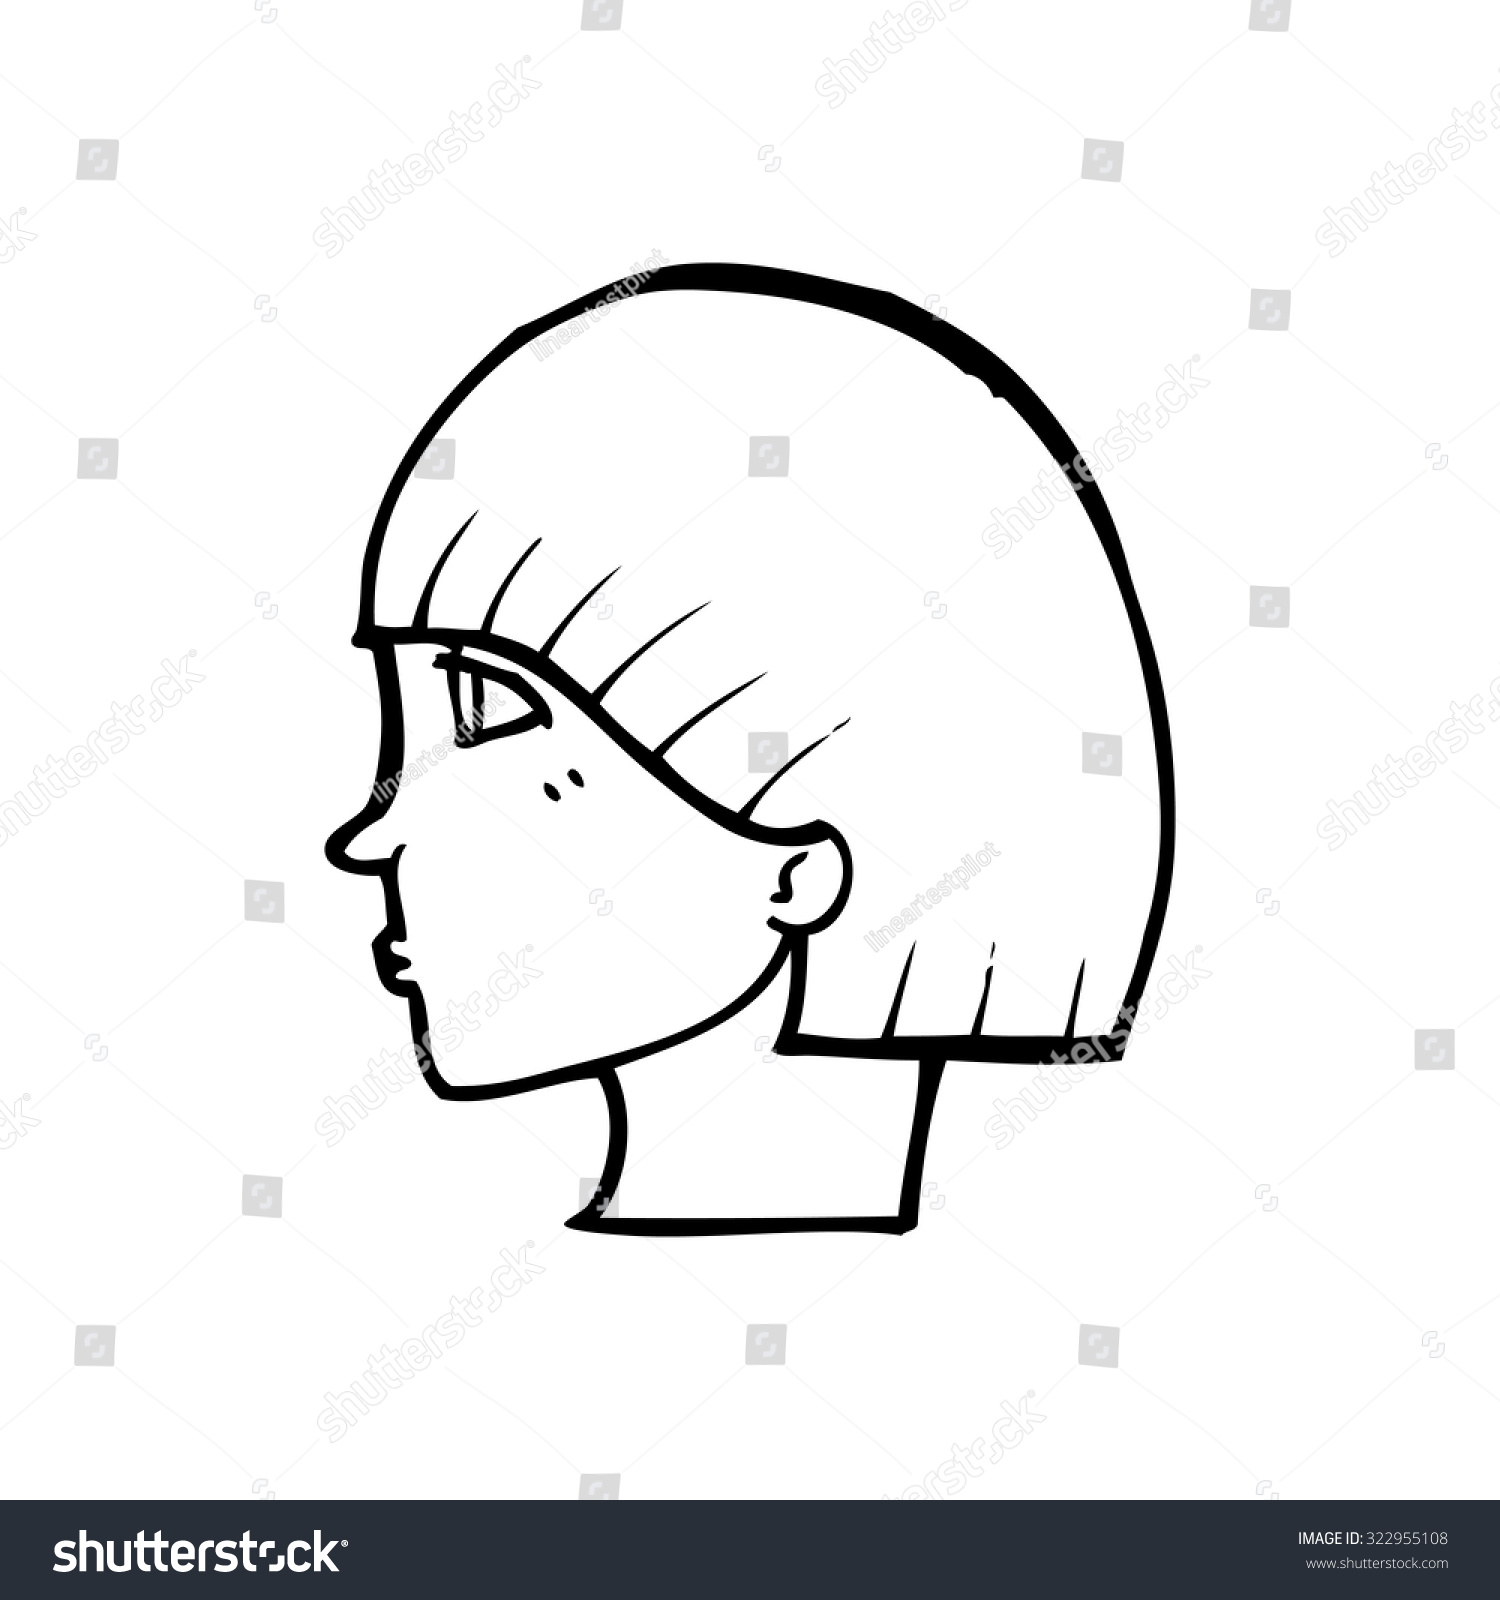 simple black white line drawing cartoon stock vector royalty free